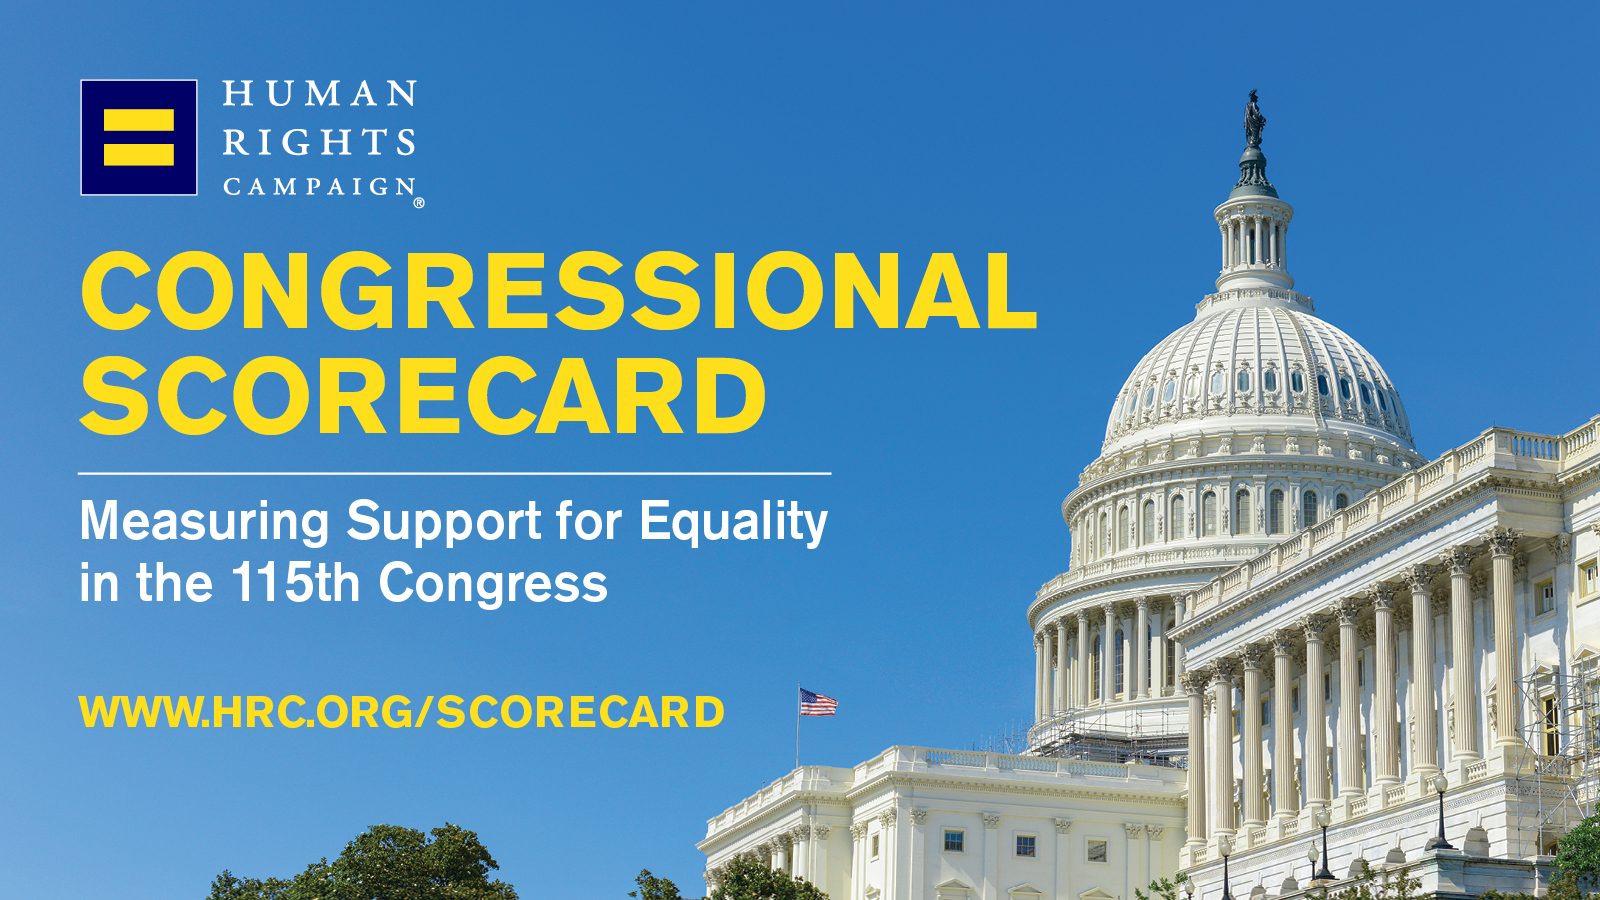 HRC Releases Scorecard of 115th Congress, Measuring Support for LGBTQ Equality